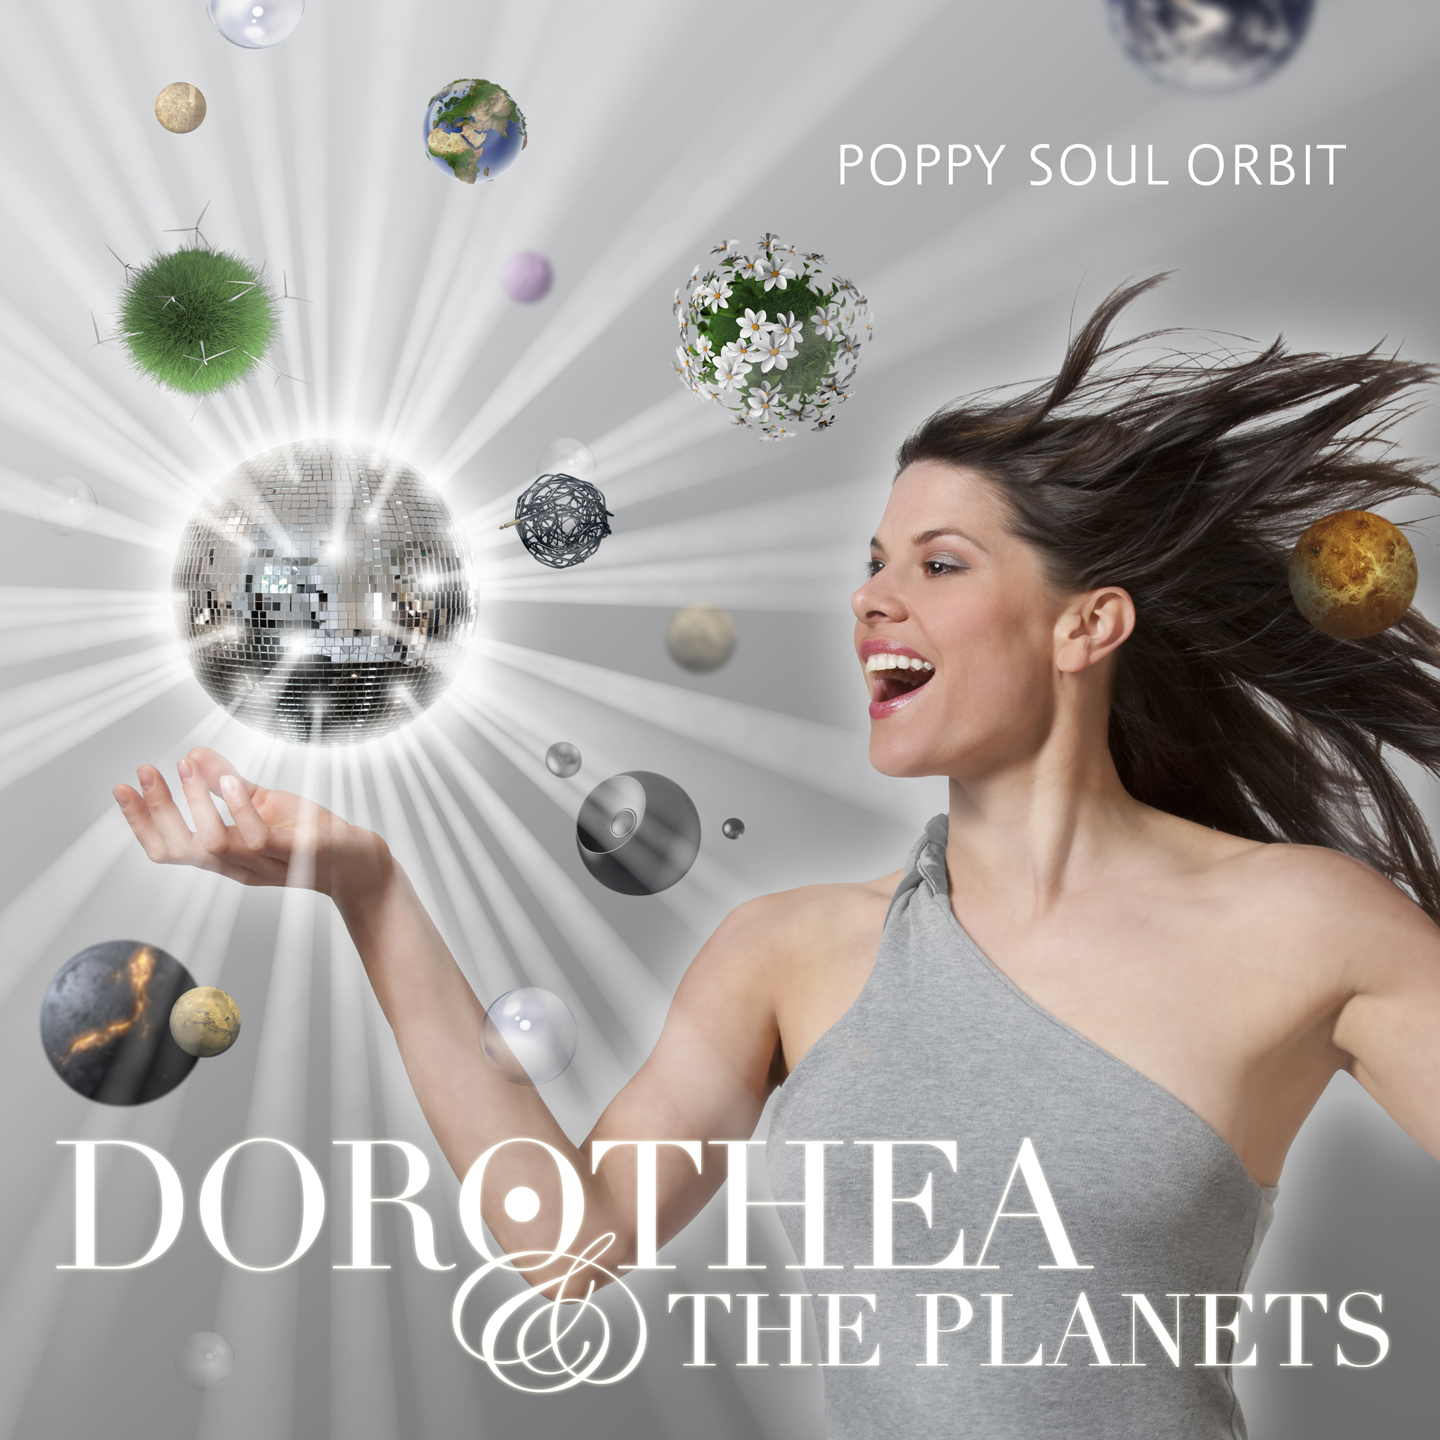 NEW ALBUM!!! DOROTHEA & THE PLANETS